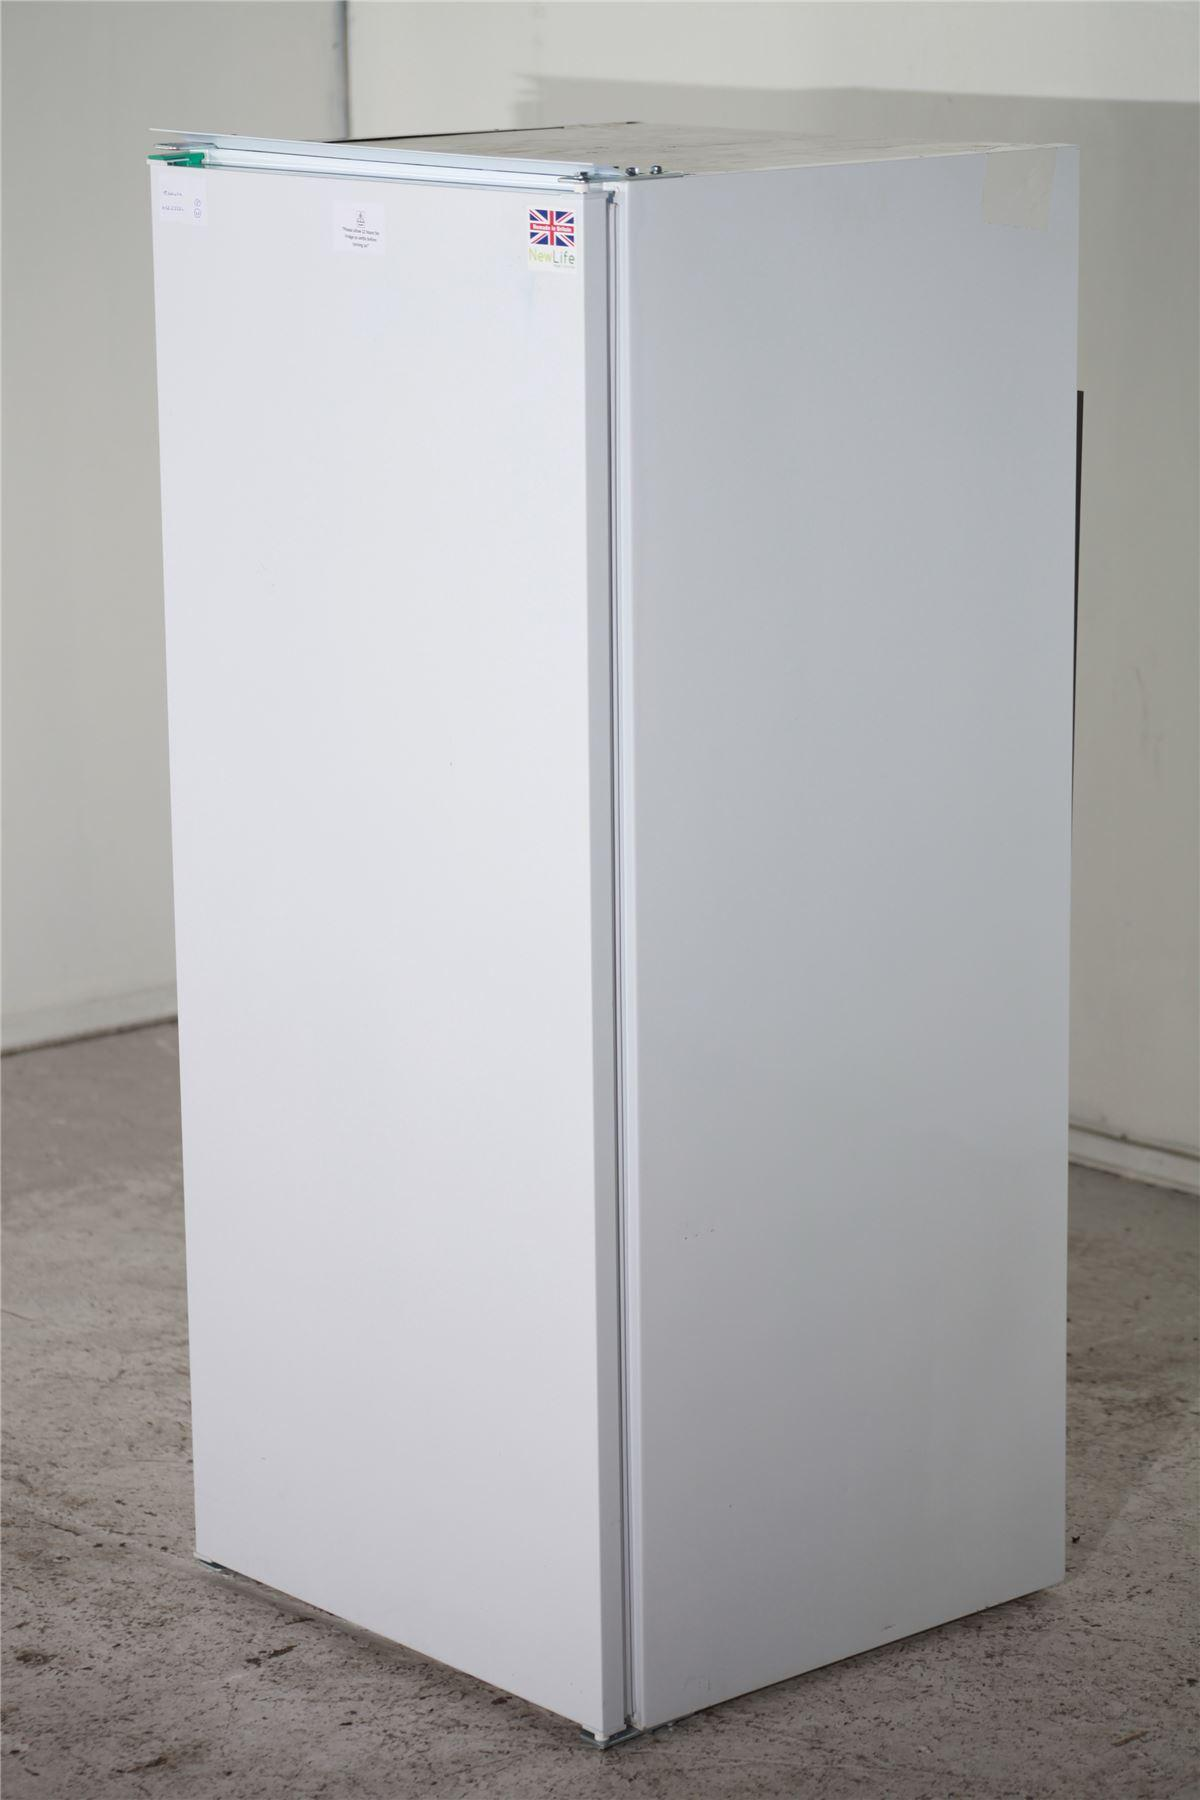 Hotpoint Integrated Fridge With Small Freezer Compartment